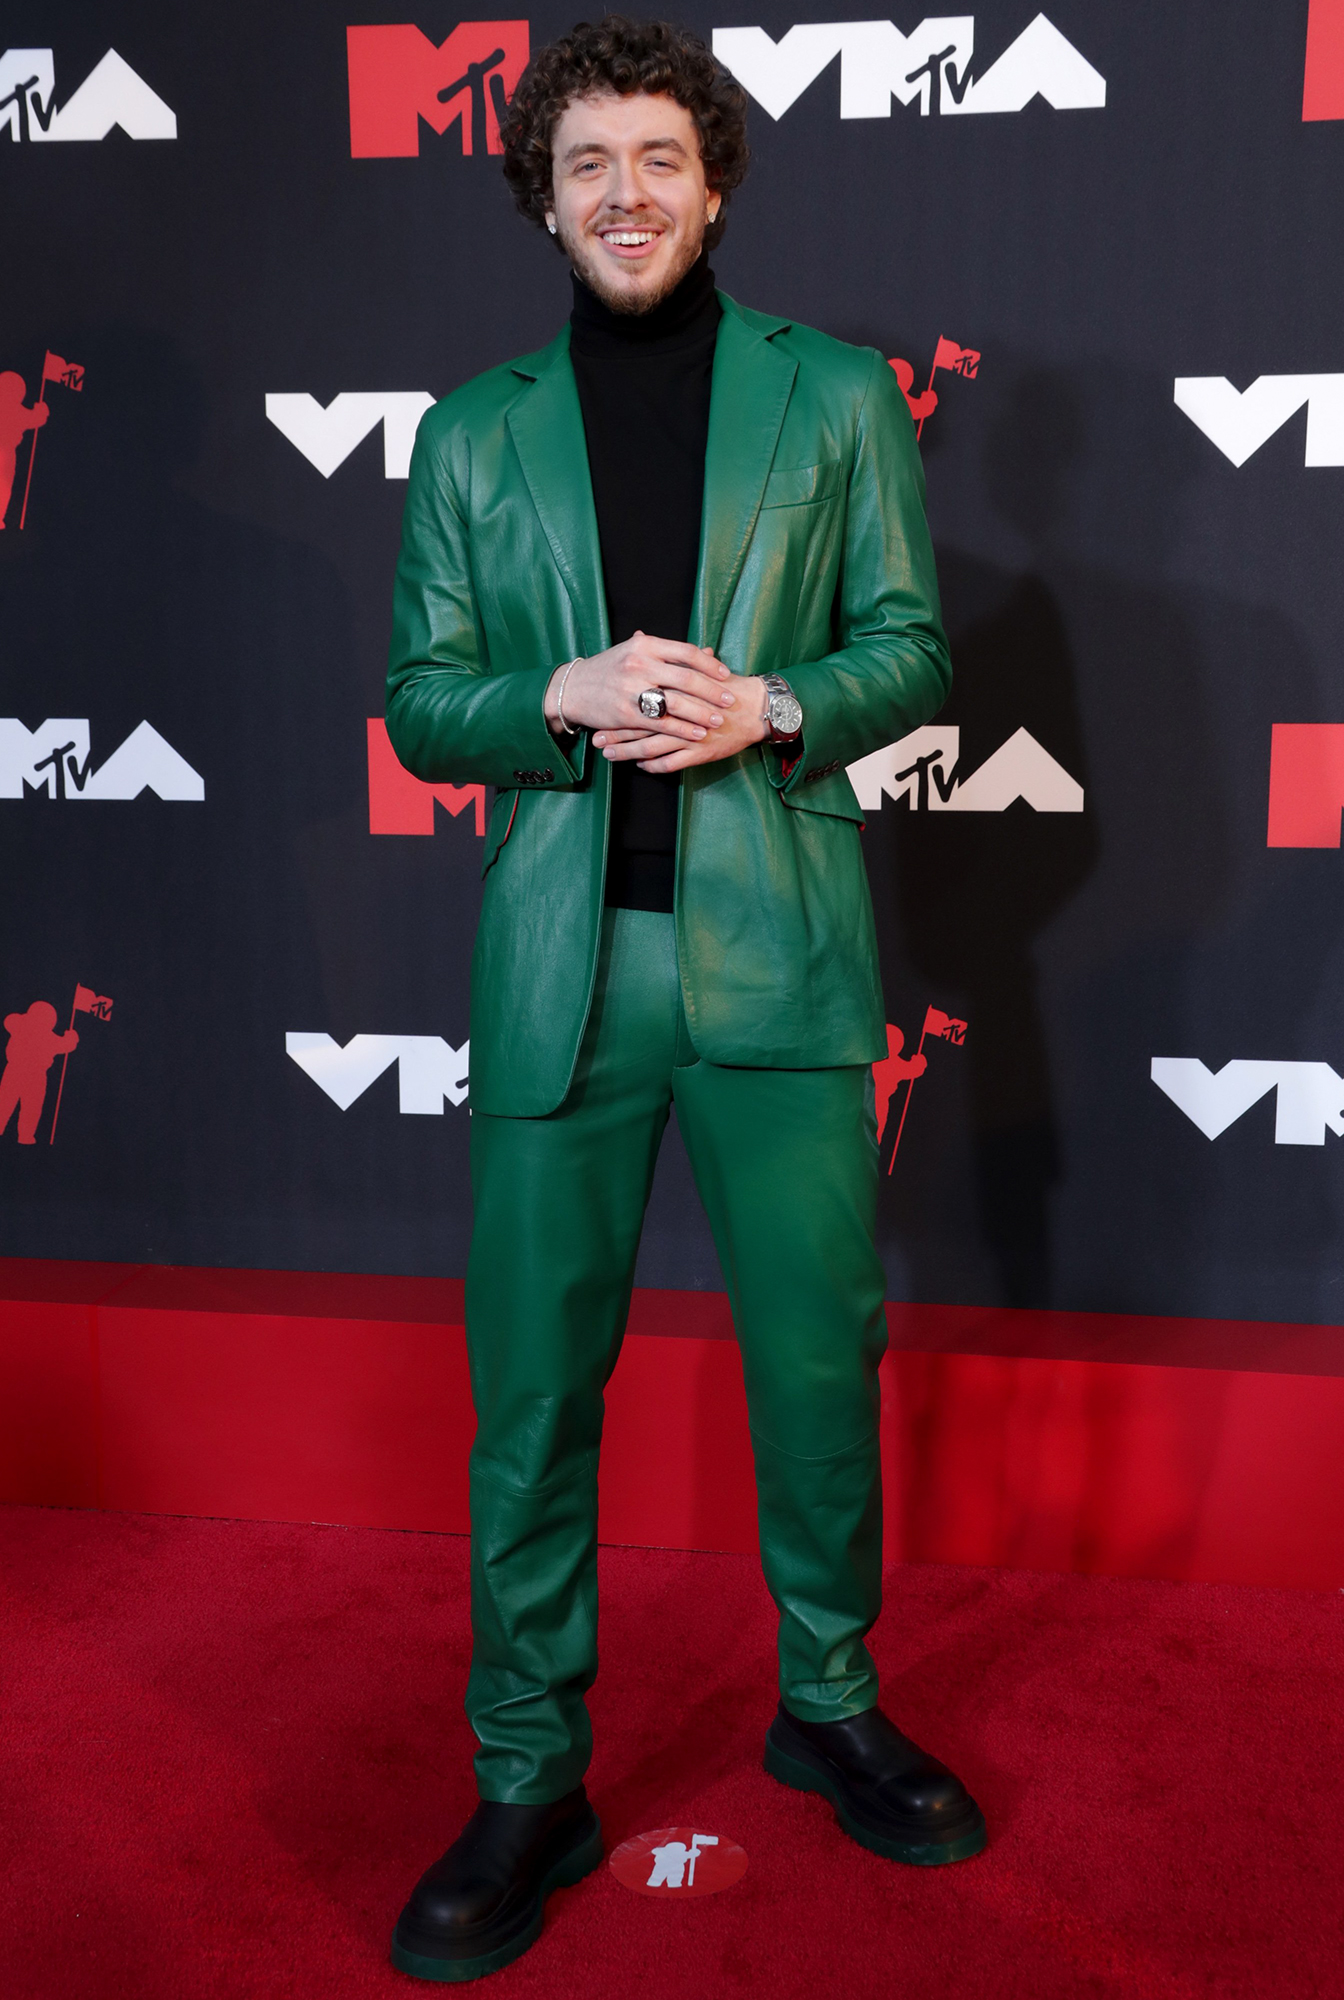 Jack Harlow arrives at the 2021 MTV Video Music Awards